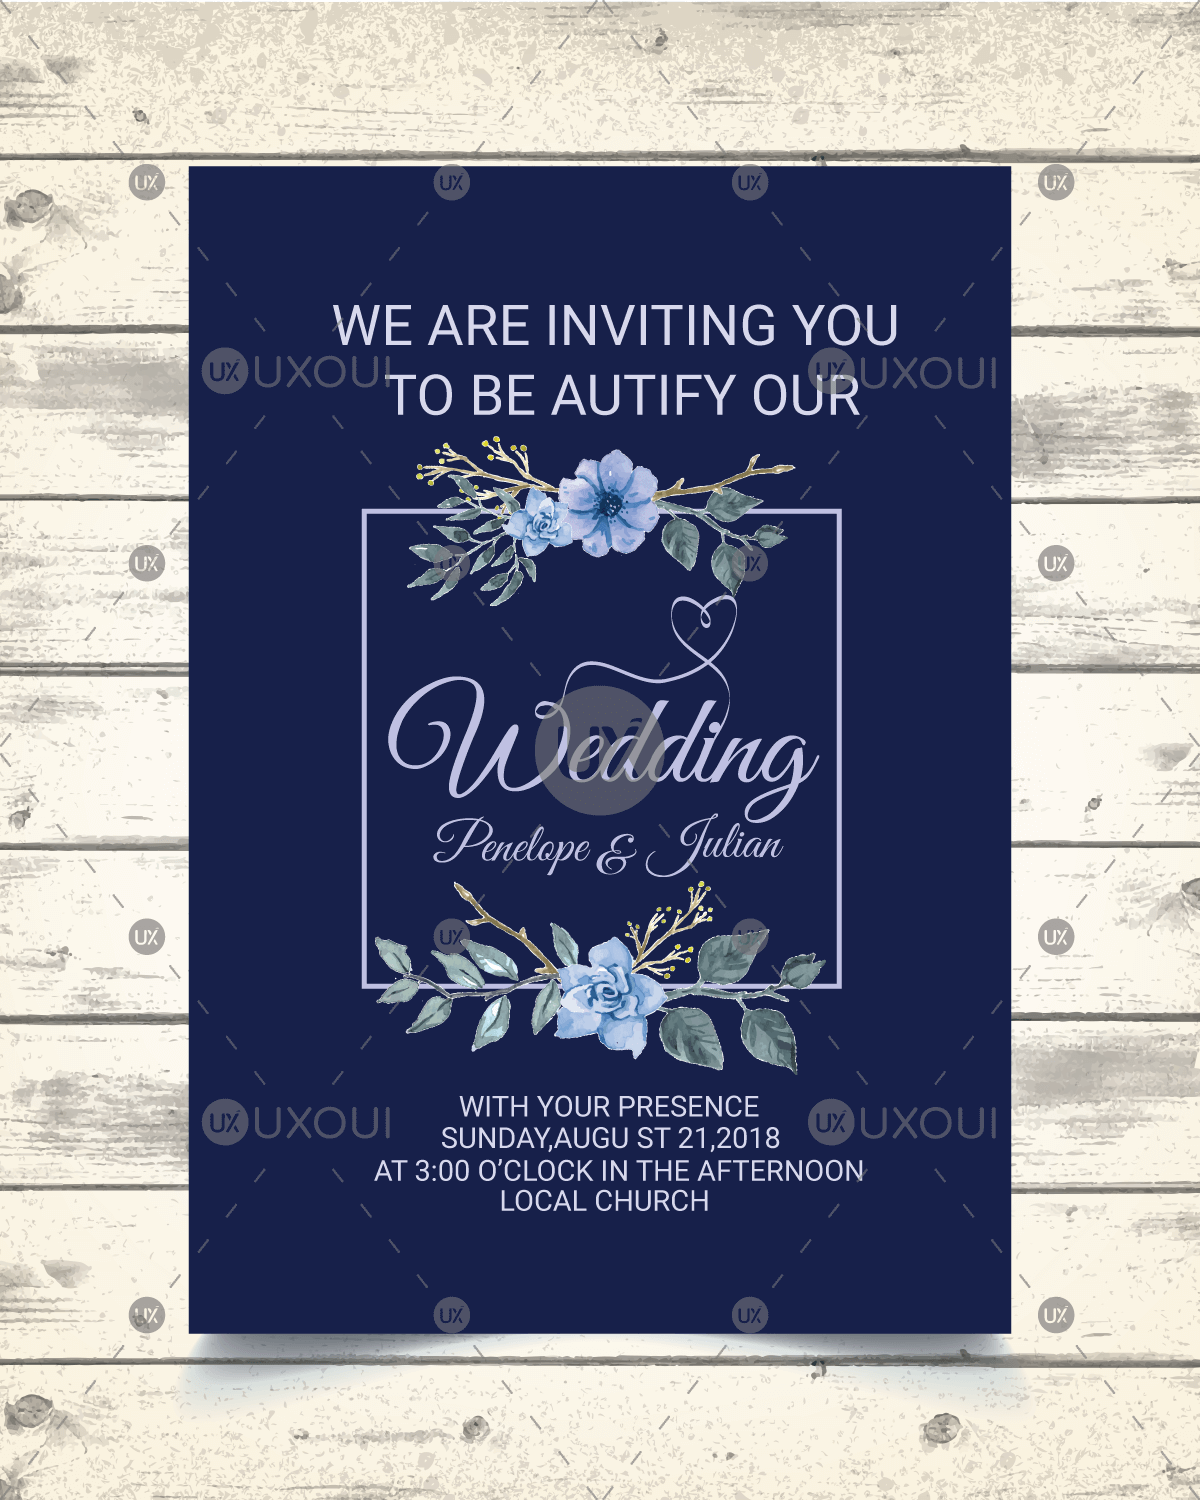 Vintage wedding invitation card design template with floral style ...